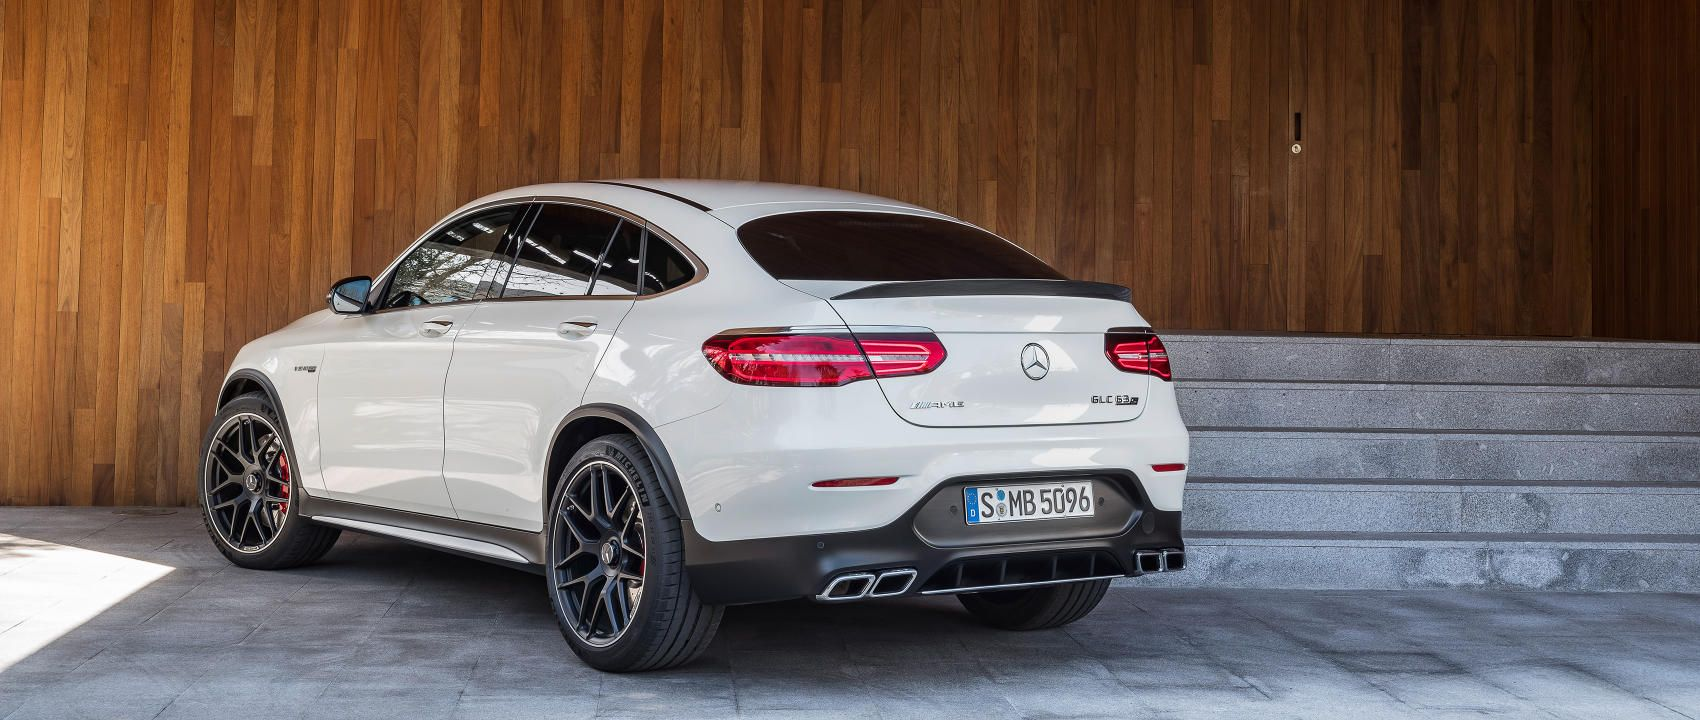 14 Mercedes Benz Vehicles Mercedes Amg Glc 63 S 4matic Coupe C 253